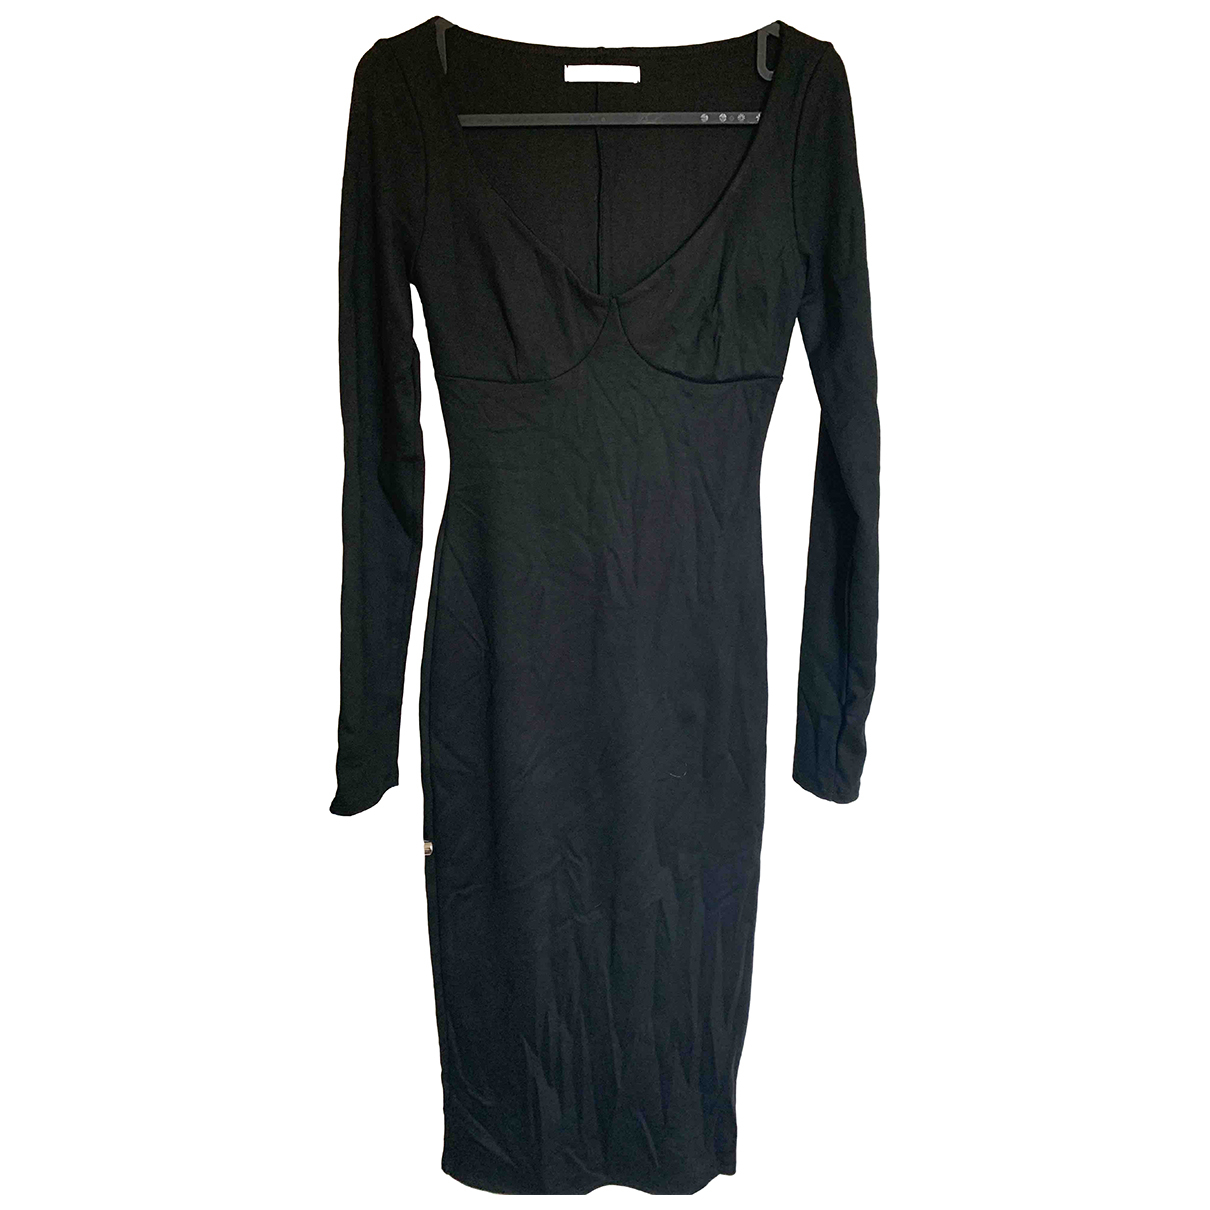 Reformation \N Black Cotton dress for Women S International